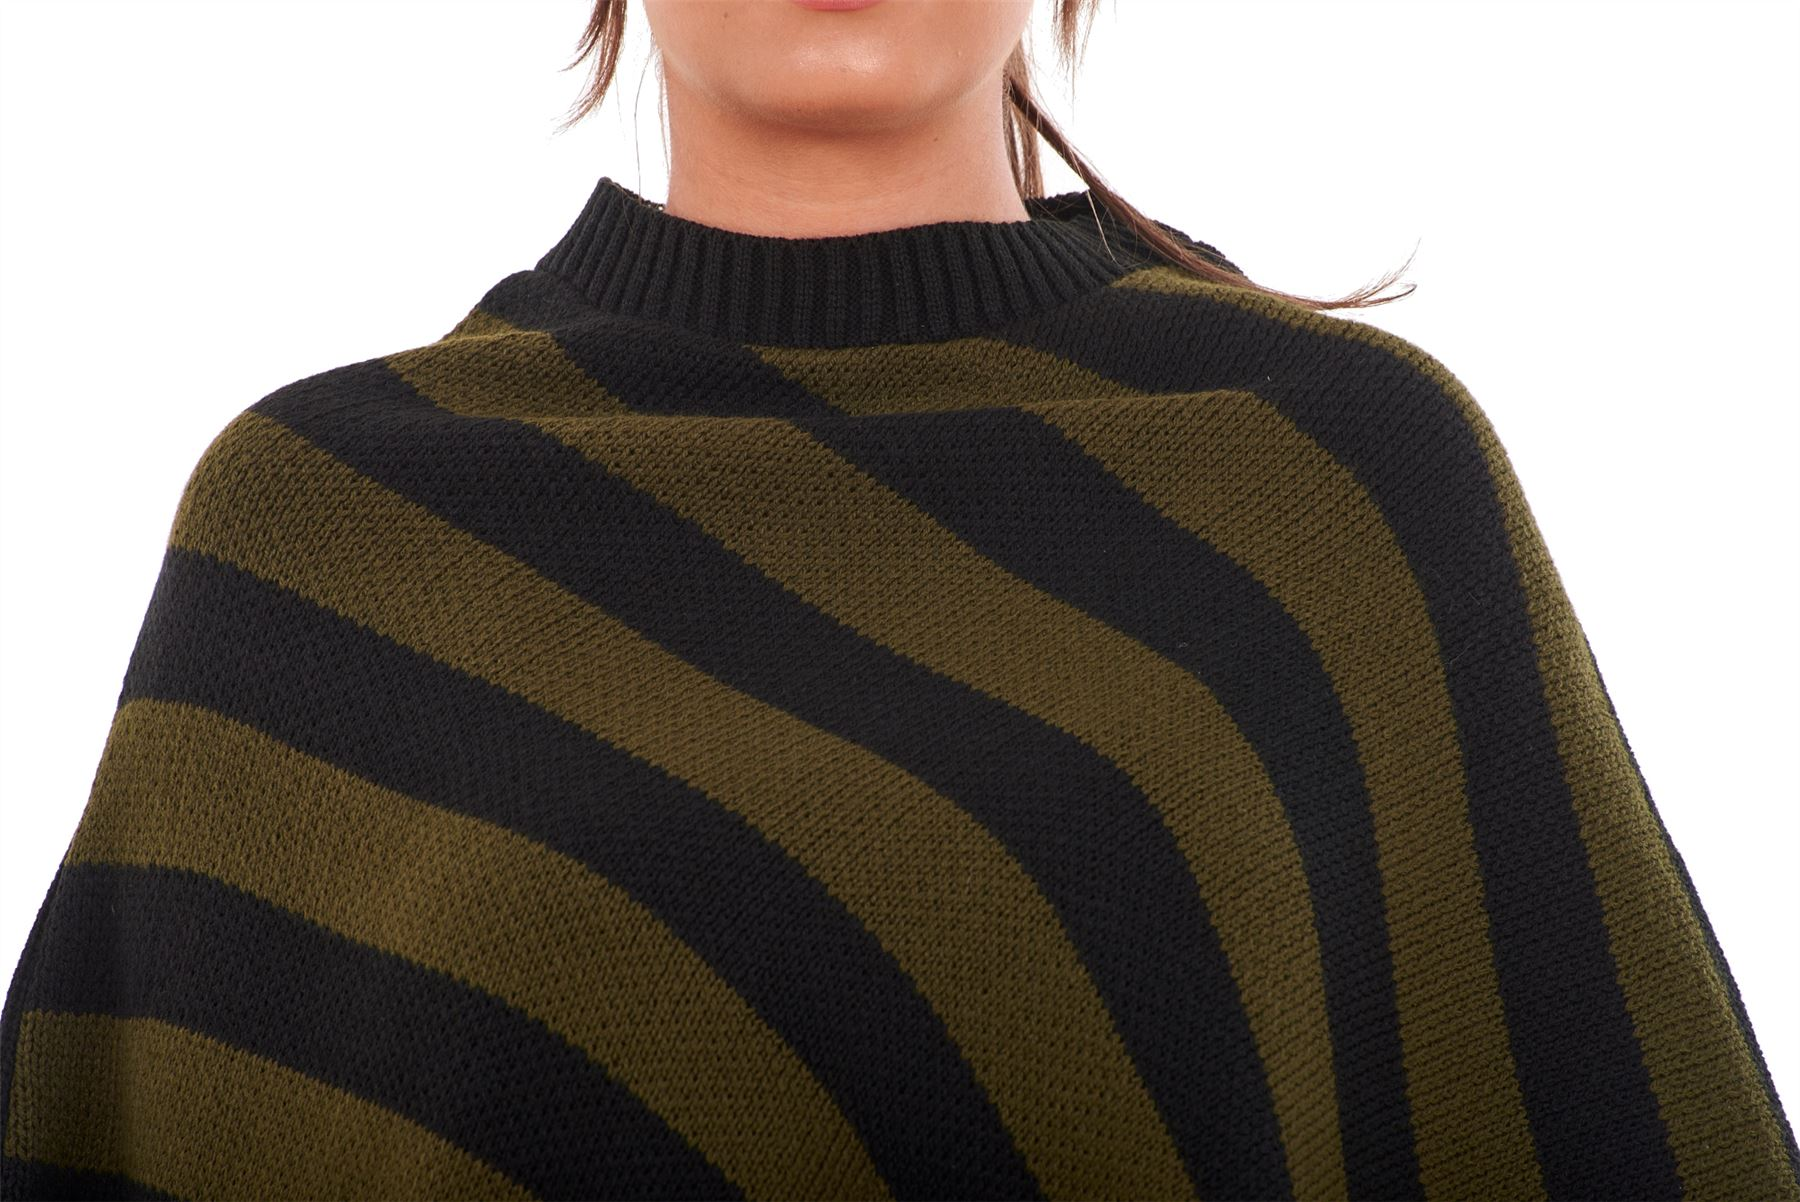 New-Ladies-Women-Knitted-Stripe-Poncho-One-Size-Plus-Crew-Neck-Warm-Sweater-Tops